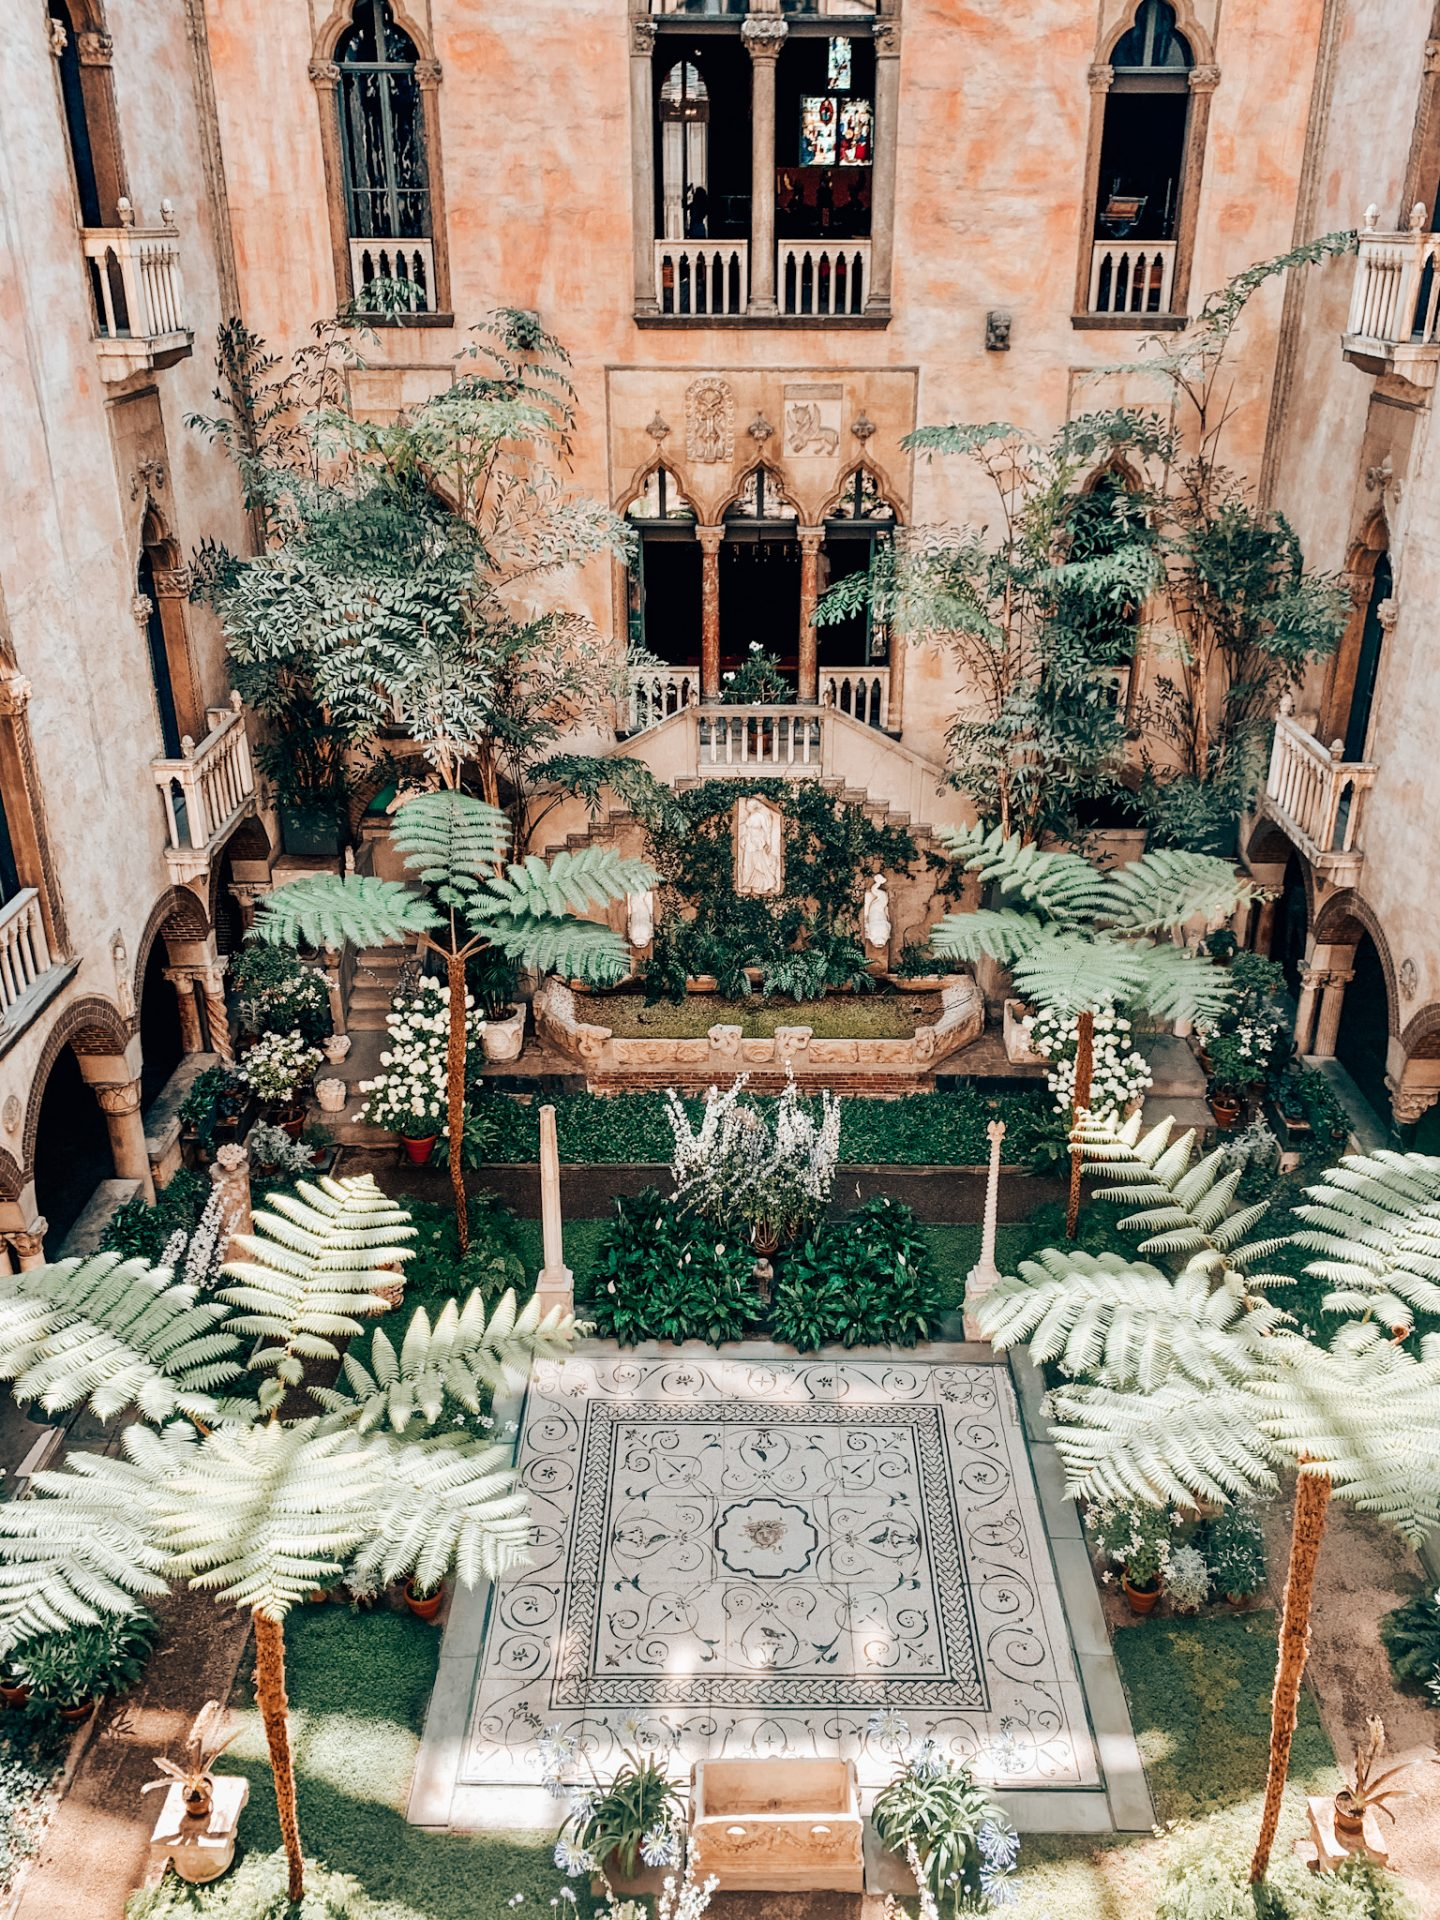 The atrium at the Isabella Stewart Gardner Museum in Boston is one of the most Instagrammable places in Boston